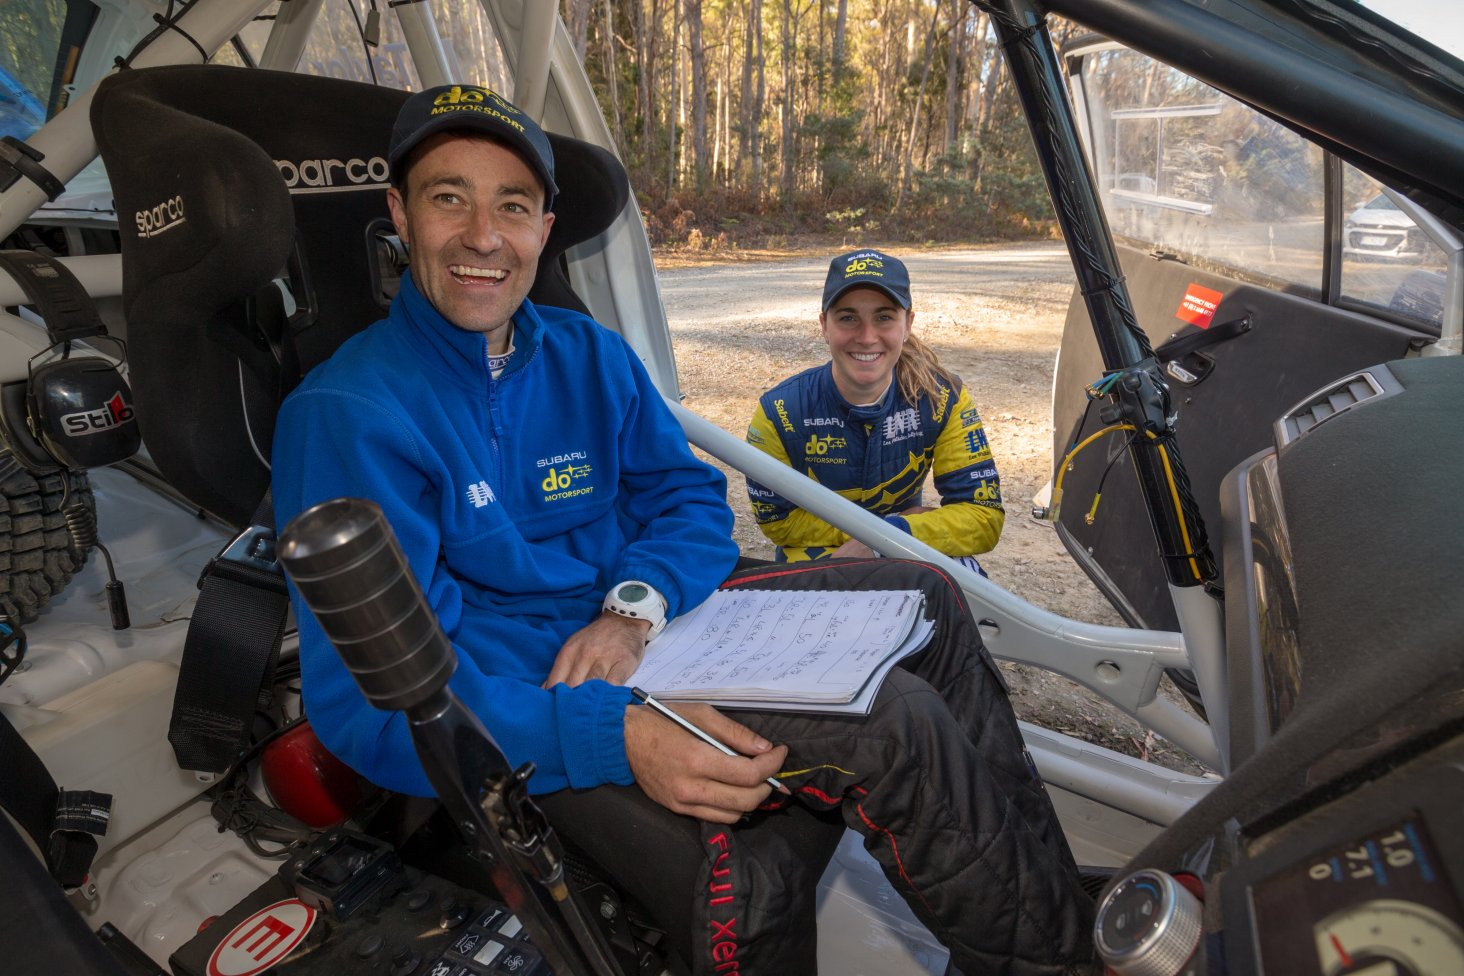 Malcolm Read began rallying in 2004 and now has more than 100 events globally to his credit.